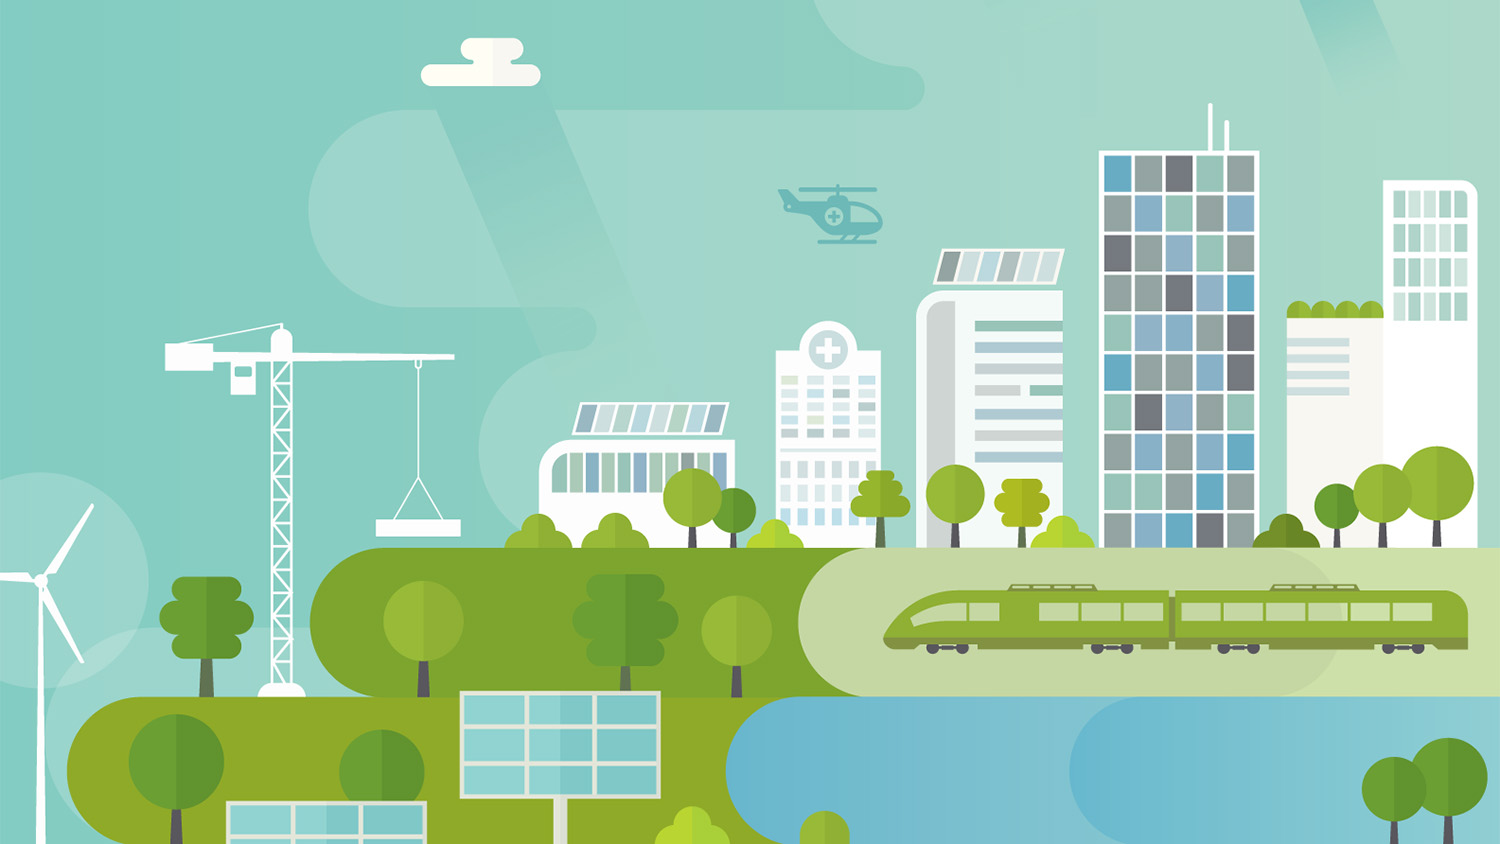 An illustration depicts a city putting green energy to work.